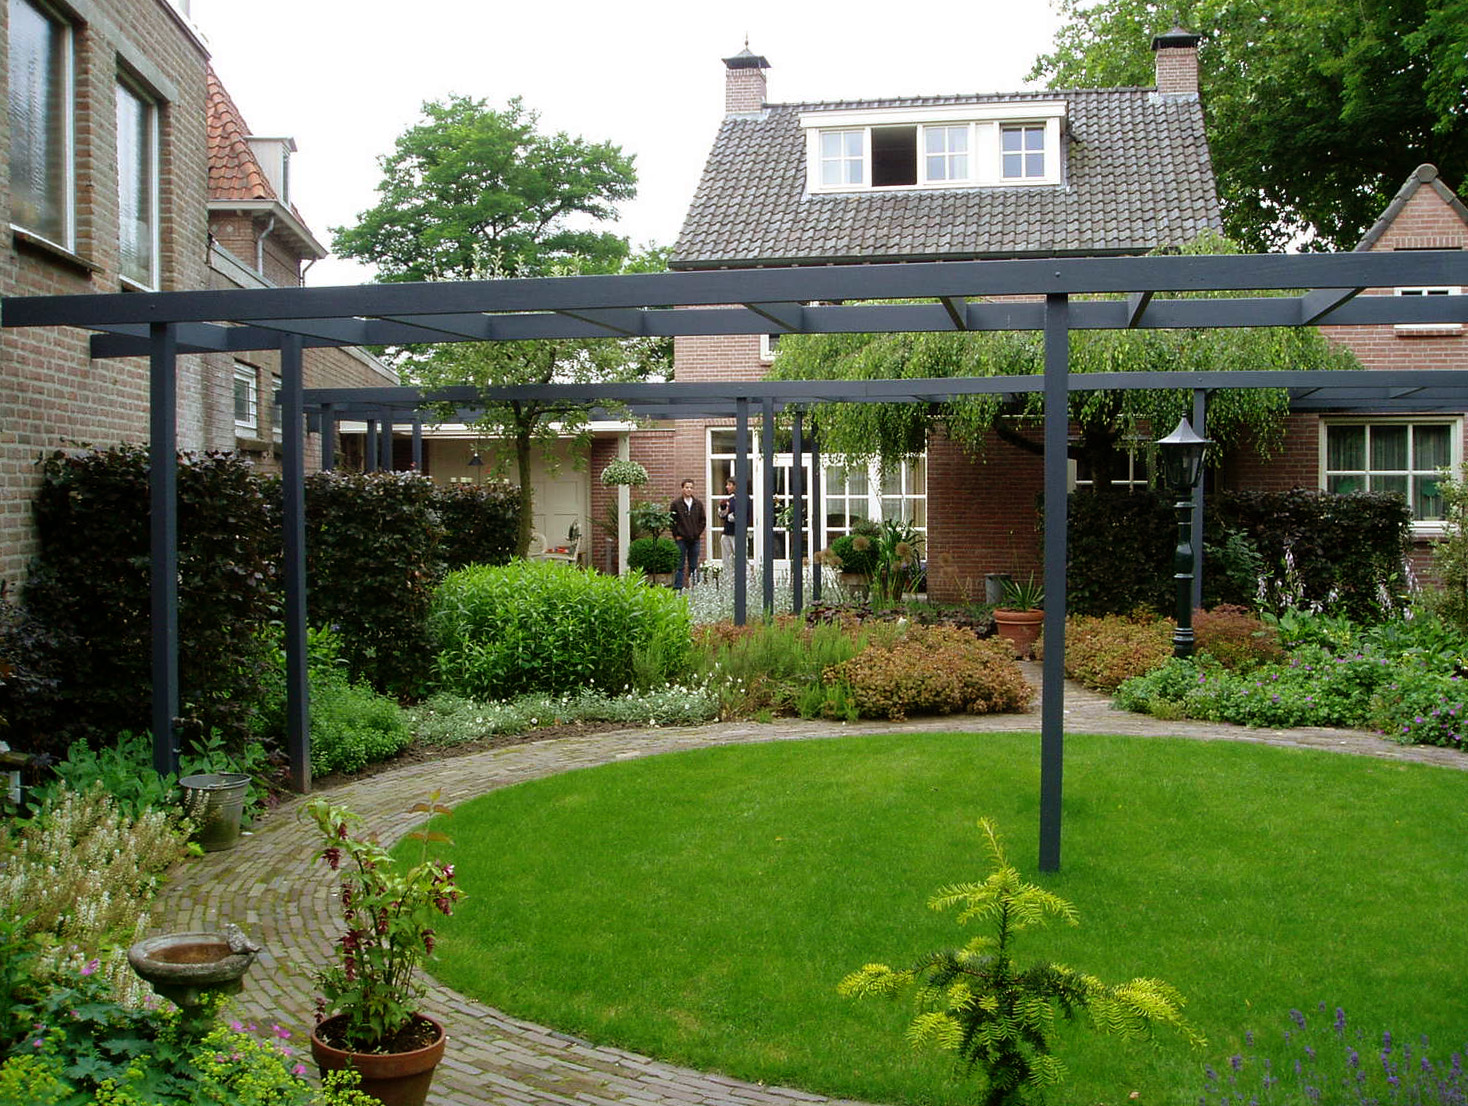 Stadstuin in vught tuinontwerp for Tuinontwerp stadstuin